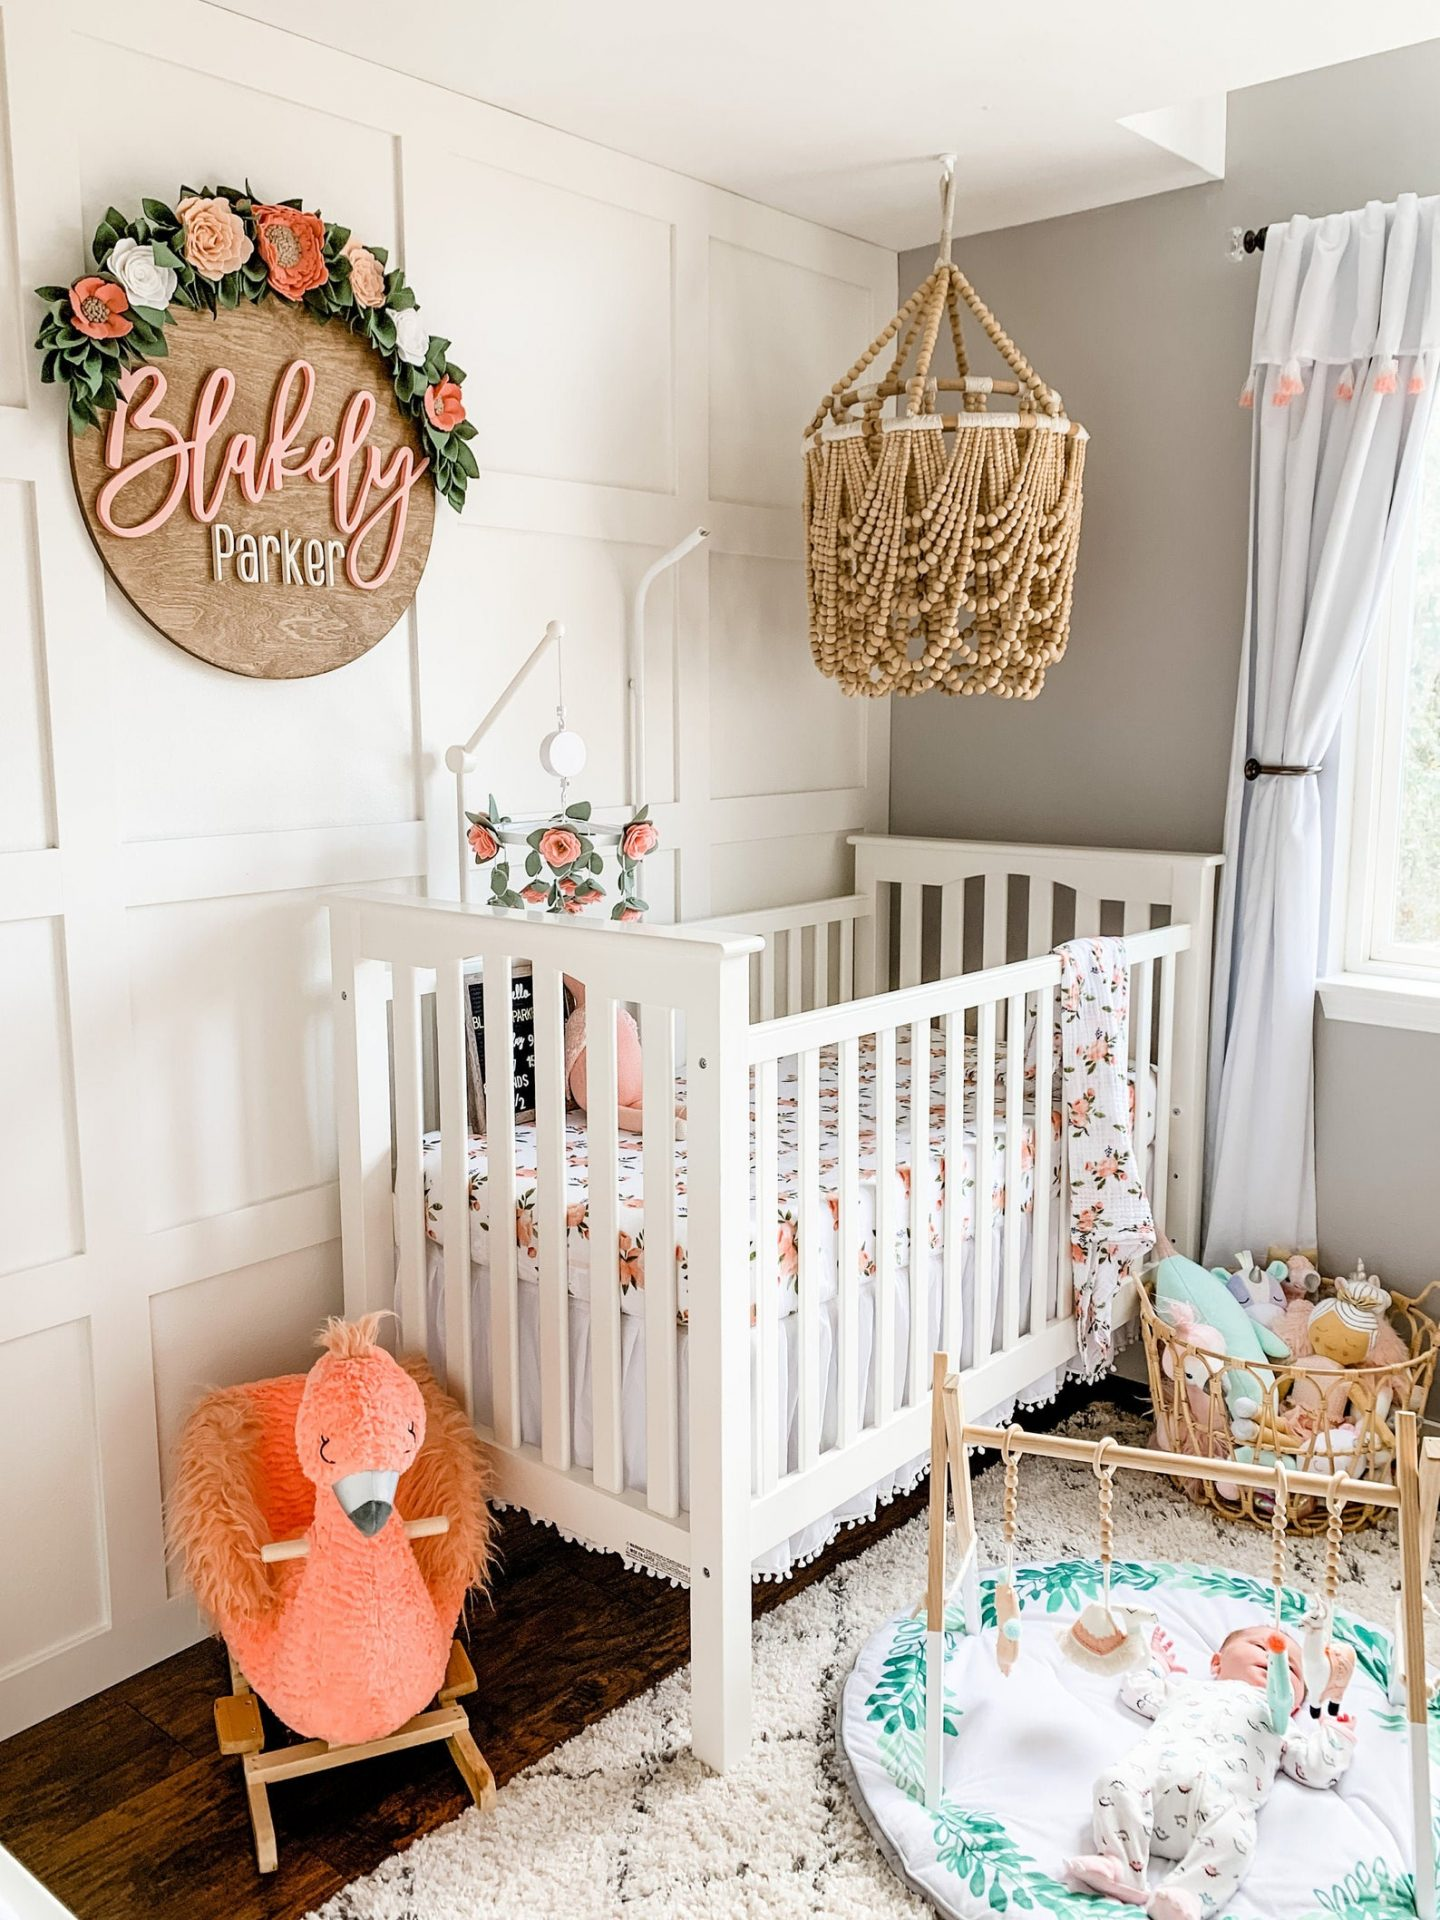 Name tag for children's room with flowers and wood